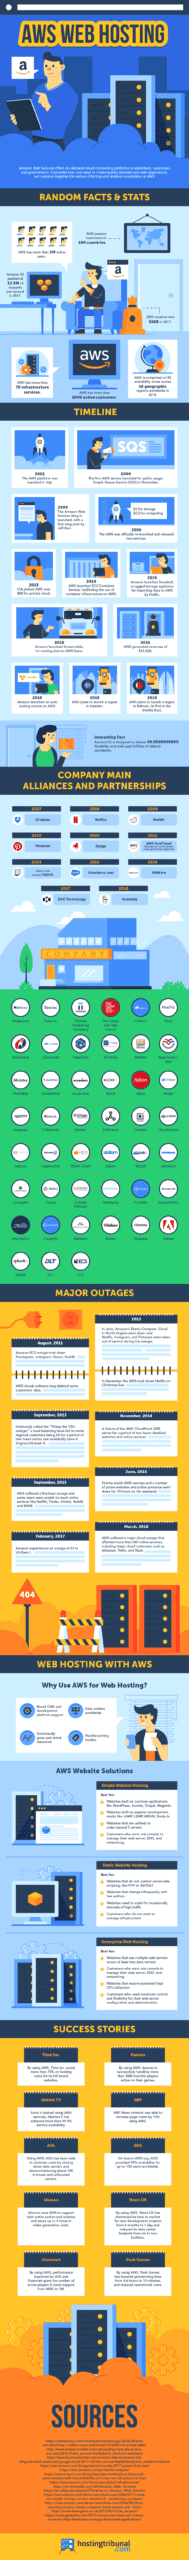 An Infographic showing facts regarding an introduction to AWS.